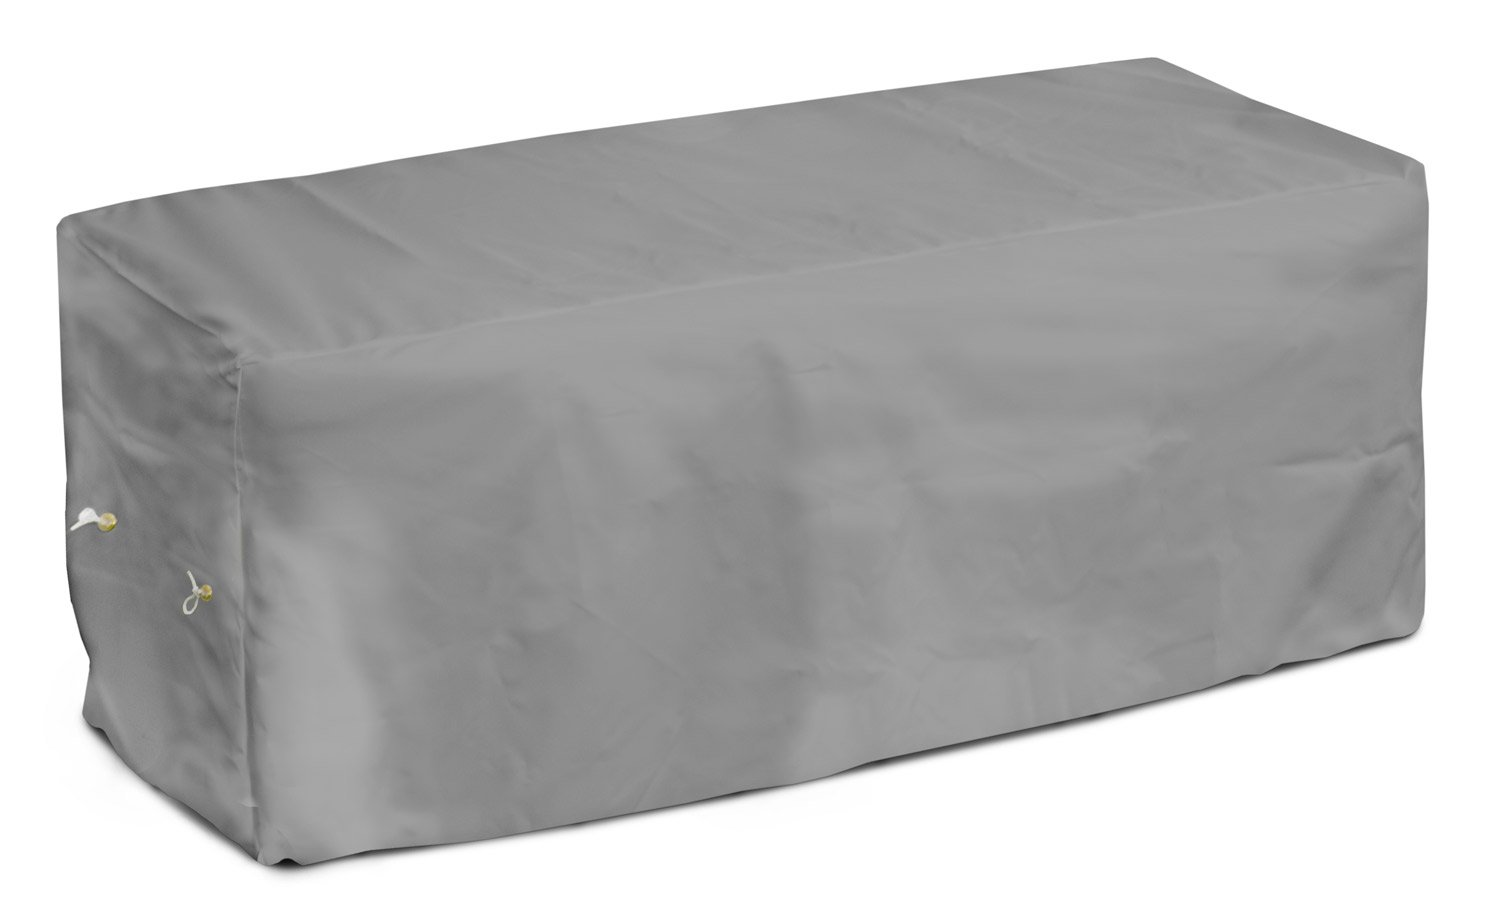 KoverRoos Weathermax 14212 4-Feet Garden Seat Cover White 51-Inch Width by 28-Inch Diameter by 18-Inch Height